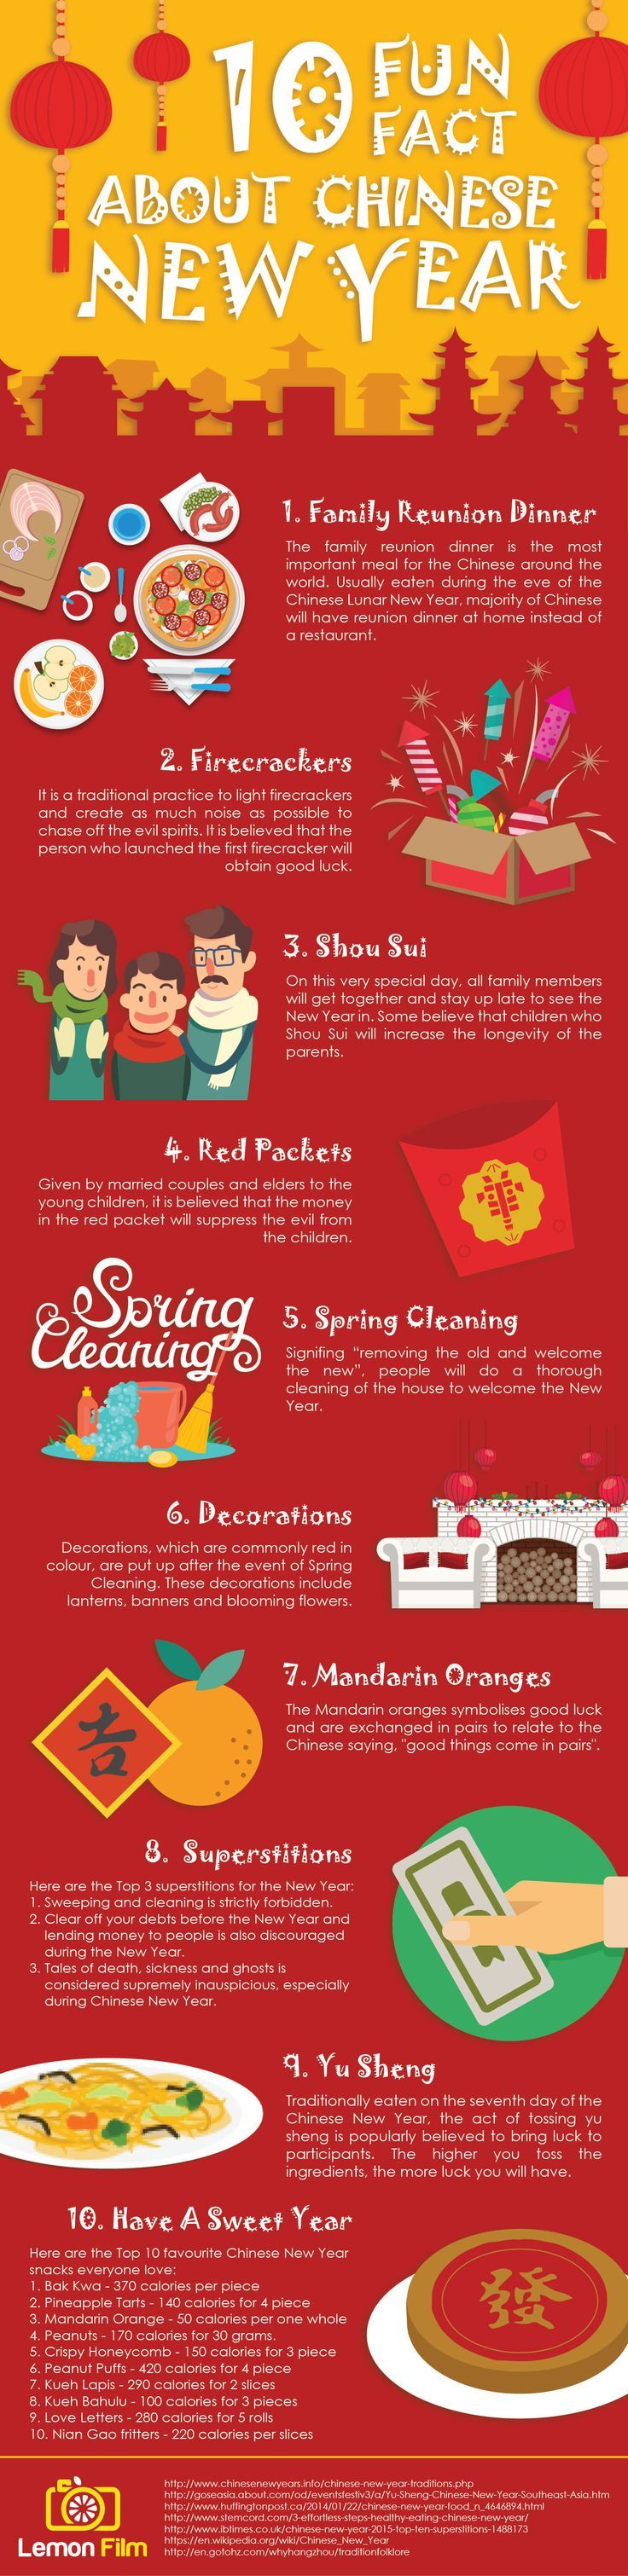 best chinese crafts ideas chinese new year  from the story nian to chinese customs how much do you know about chinese new year here is an infographic of 10 fun facts about chinese new year